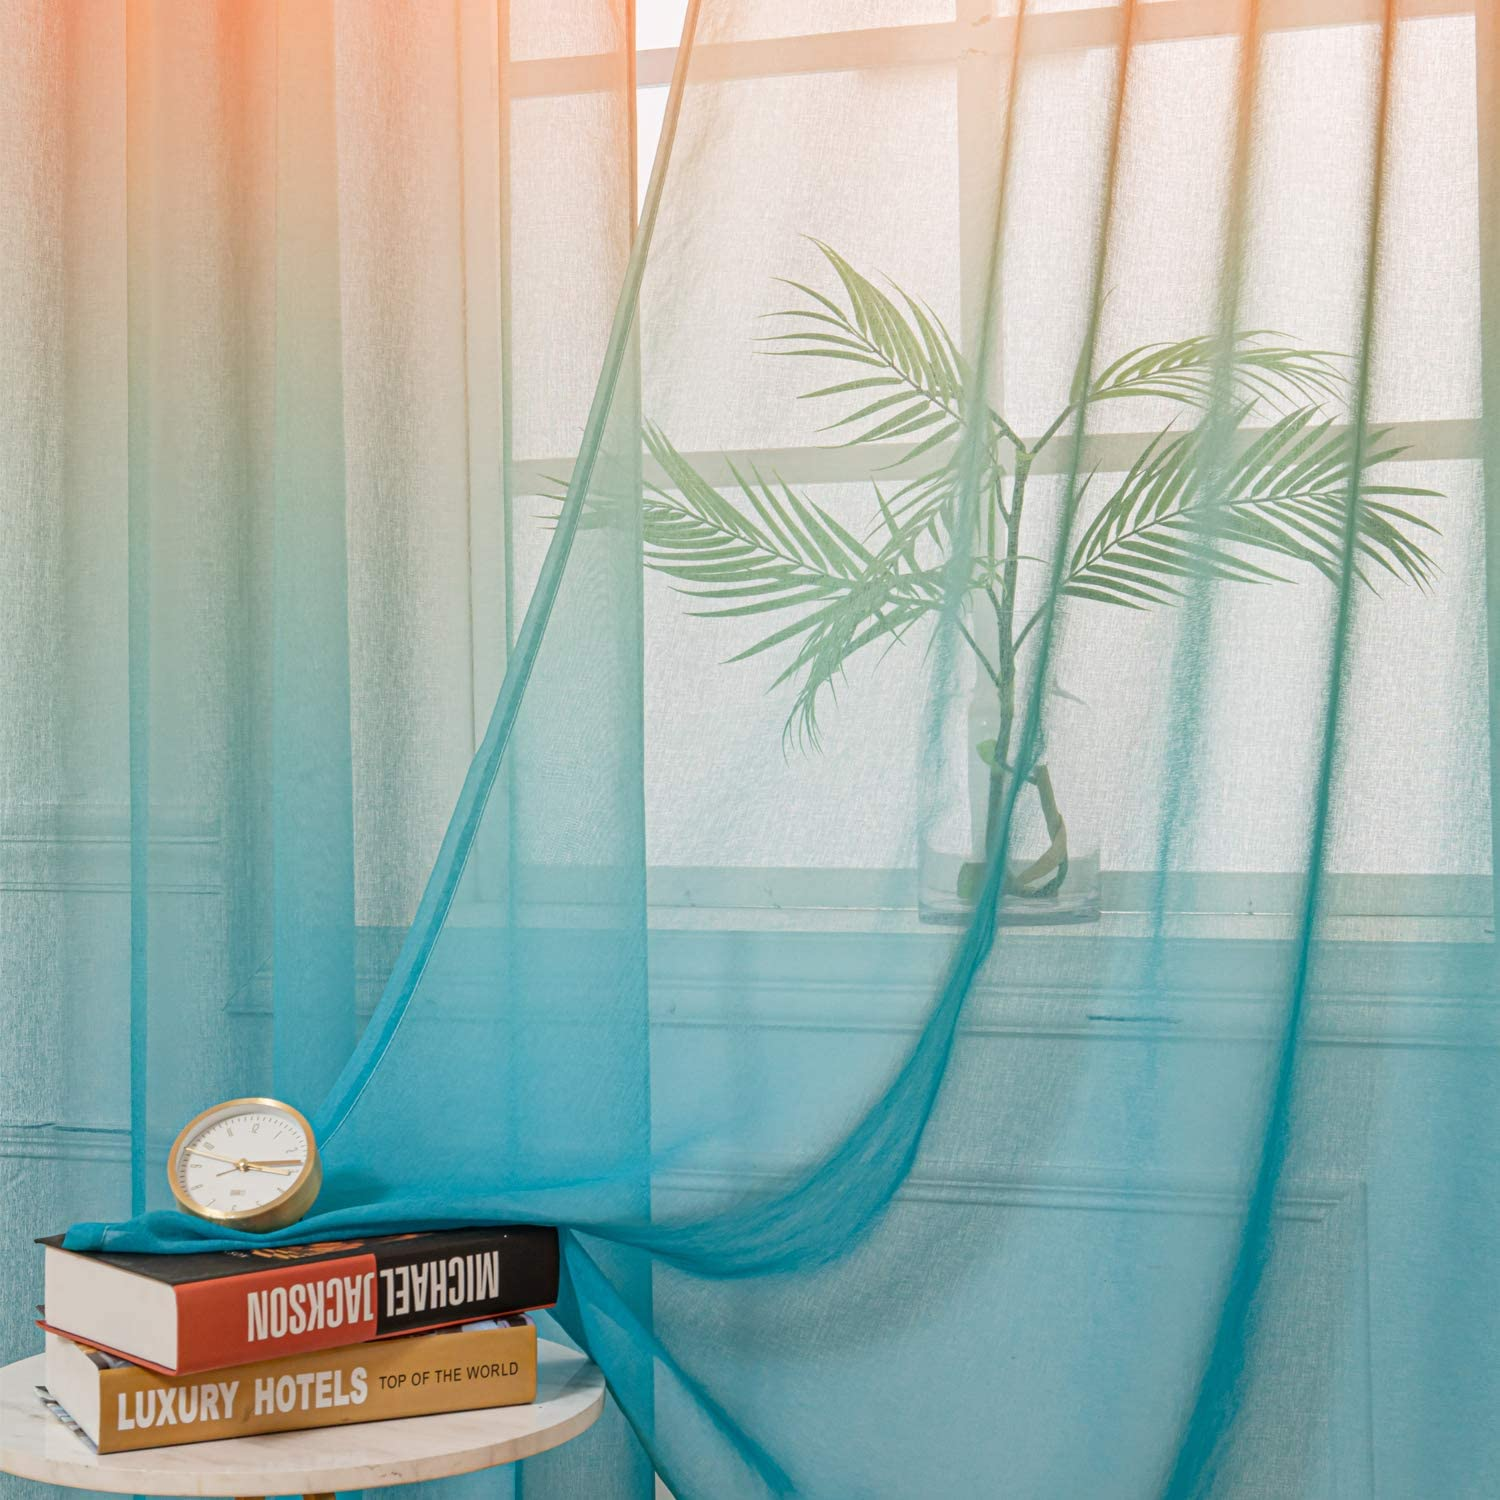 STFLY Ombre Sheer Curtains for Living Room 2 Panels Faux Linen Semi Sheer Curtain Gradient Voile Grommet Top Drapes for Bedroom Kids Boys Girls Room 52 W x 84 L, Green and Purple